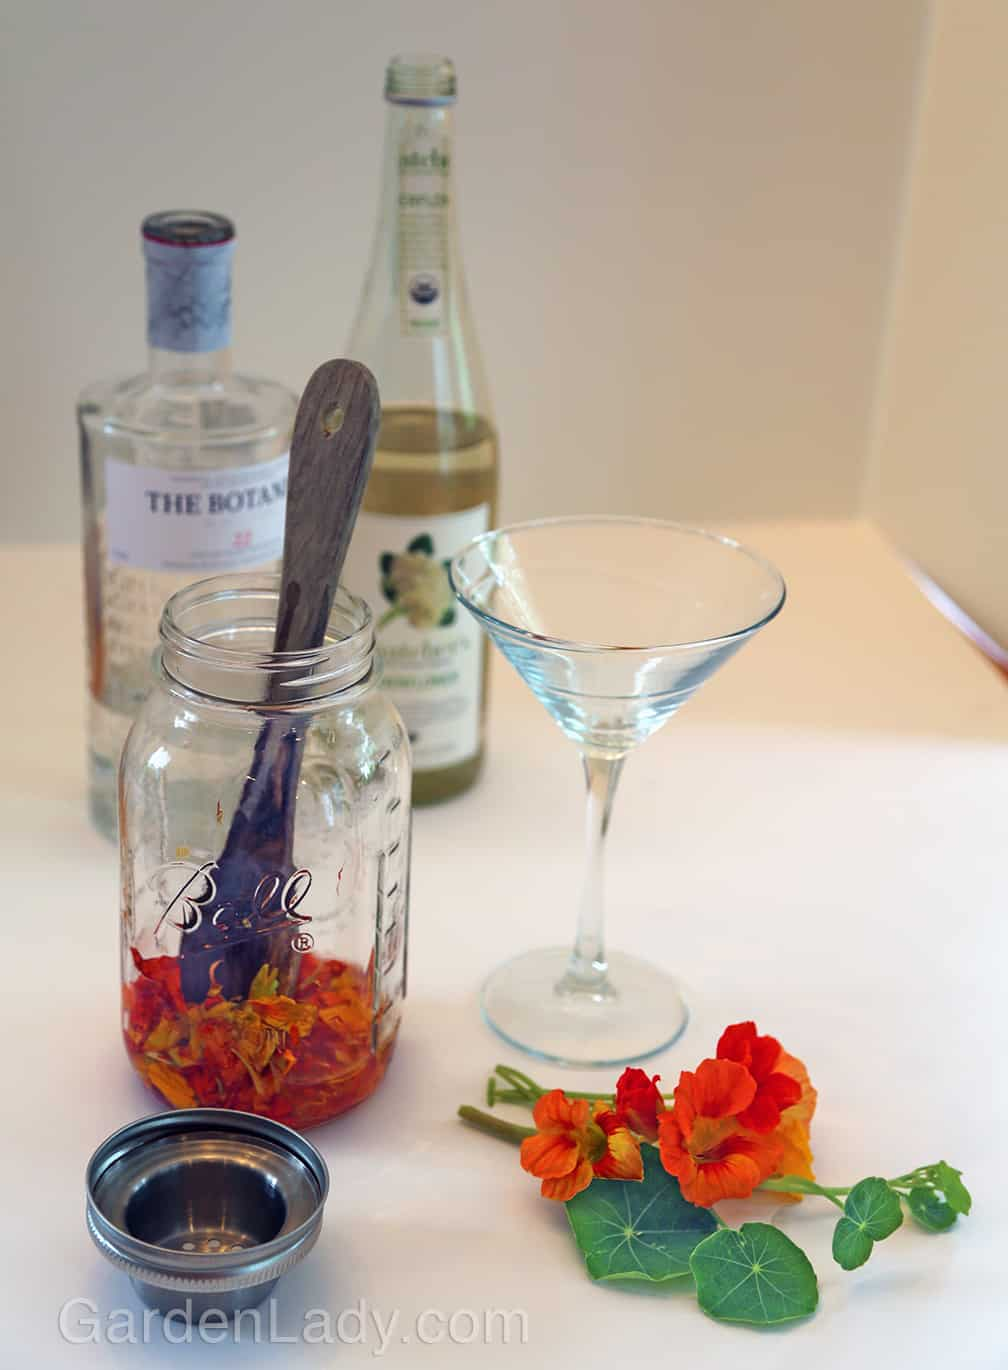 Muddle the flowers by smashing them with a wooden spoon, then add the liquids.